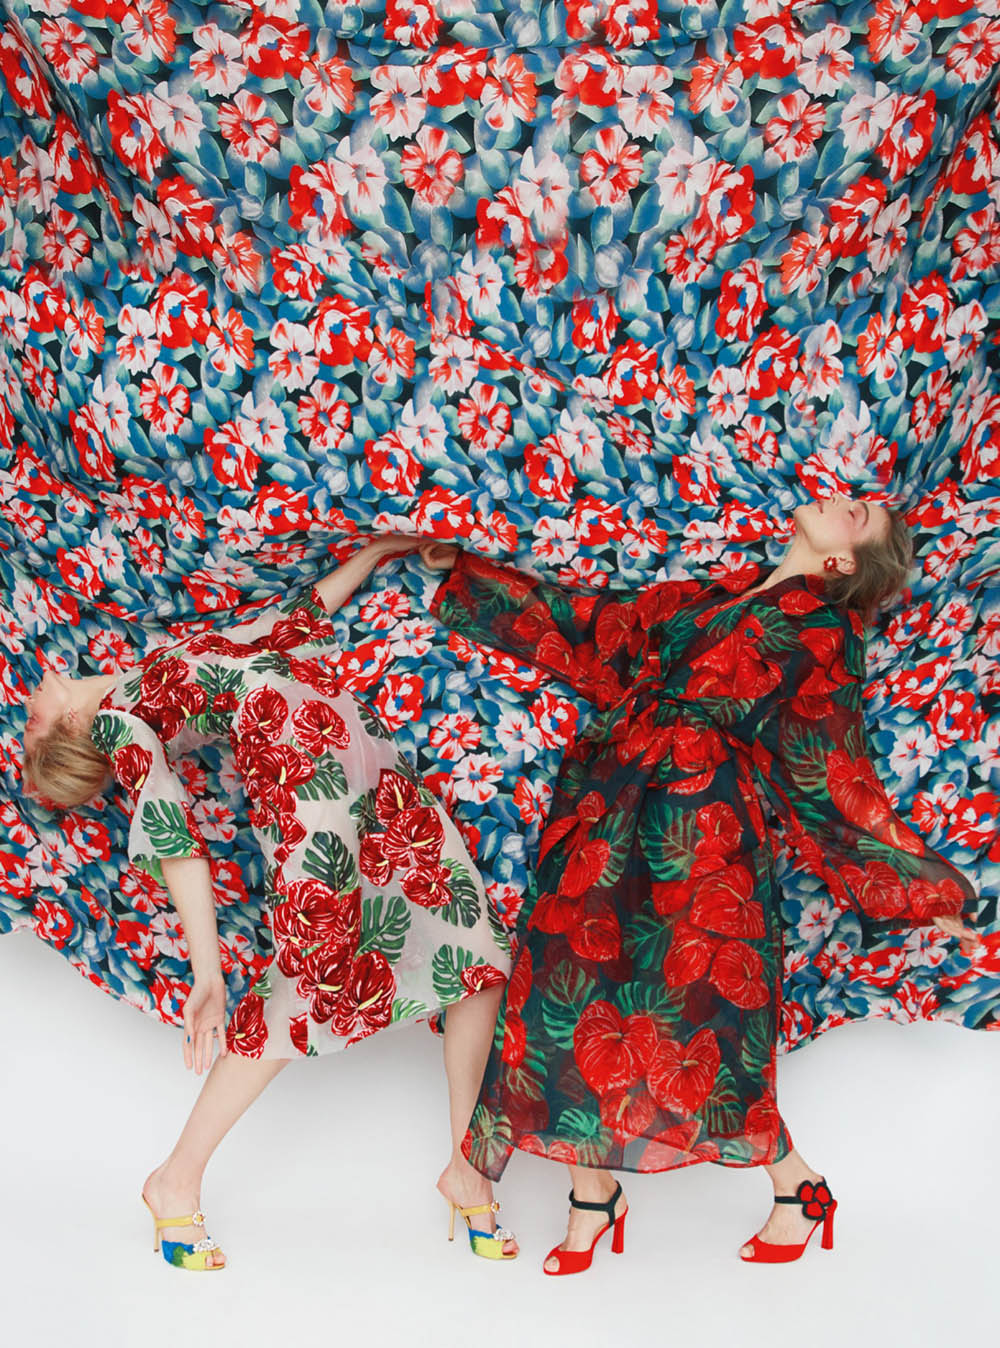 Eniko Mihalik and Kim Noorda by Erik Madigan Heck for Harper's Bazaar UK May 2020